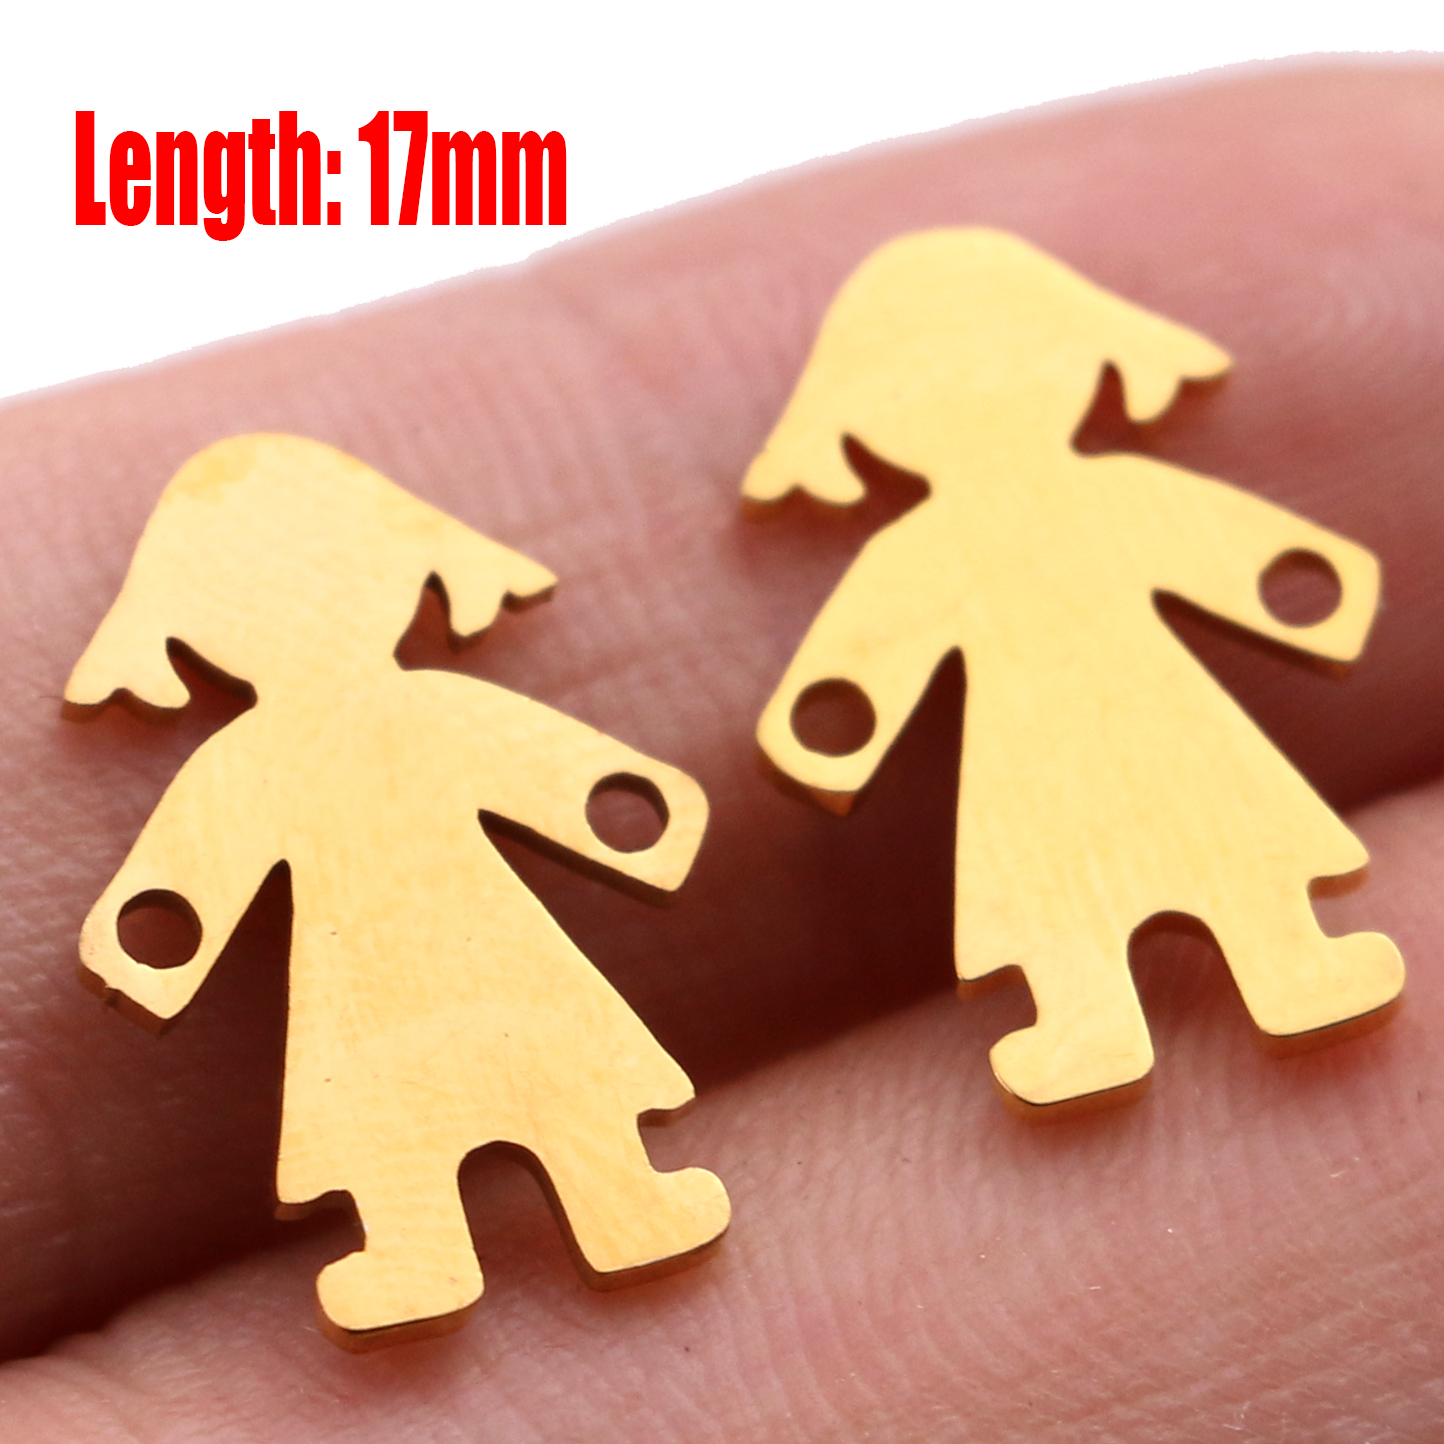 5pcs Family Chain Stainless Steel Pendant Necklace Parents and Children Necklaces Gold/steel Jewelry Gift for Mom Dad New Twice - Цвет: Gold15